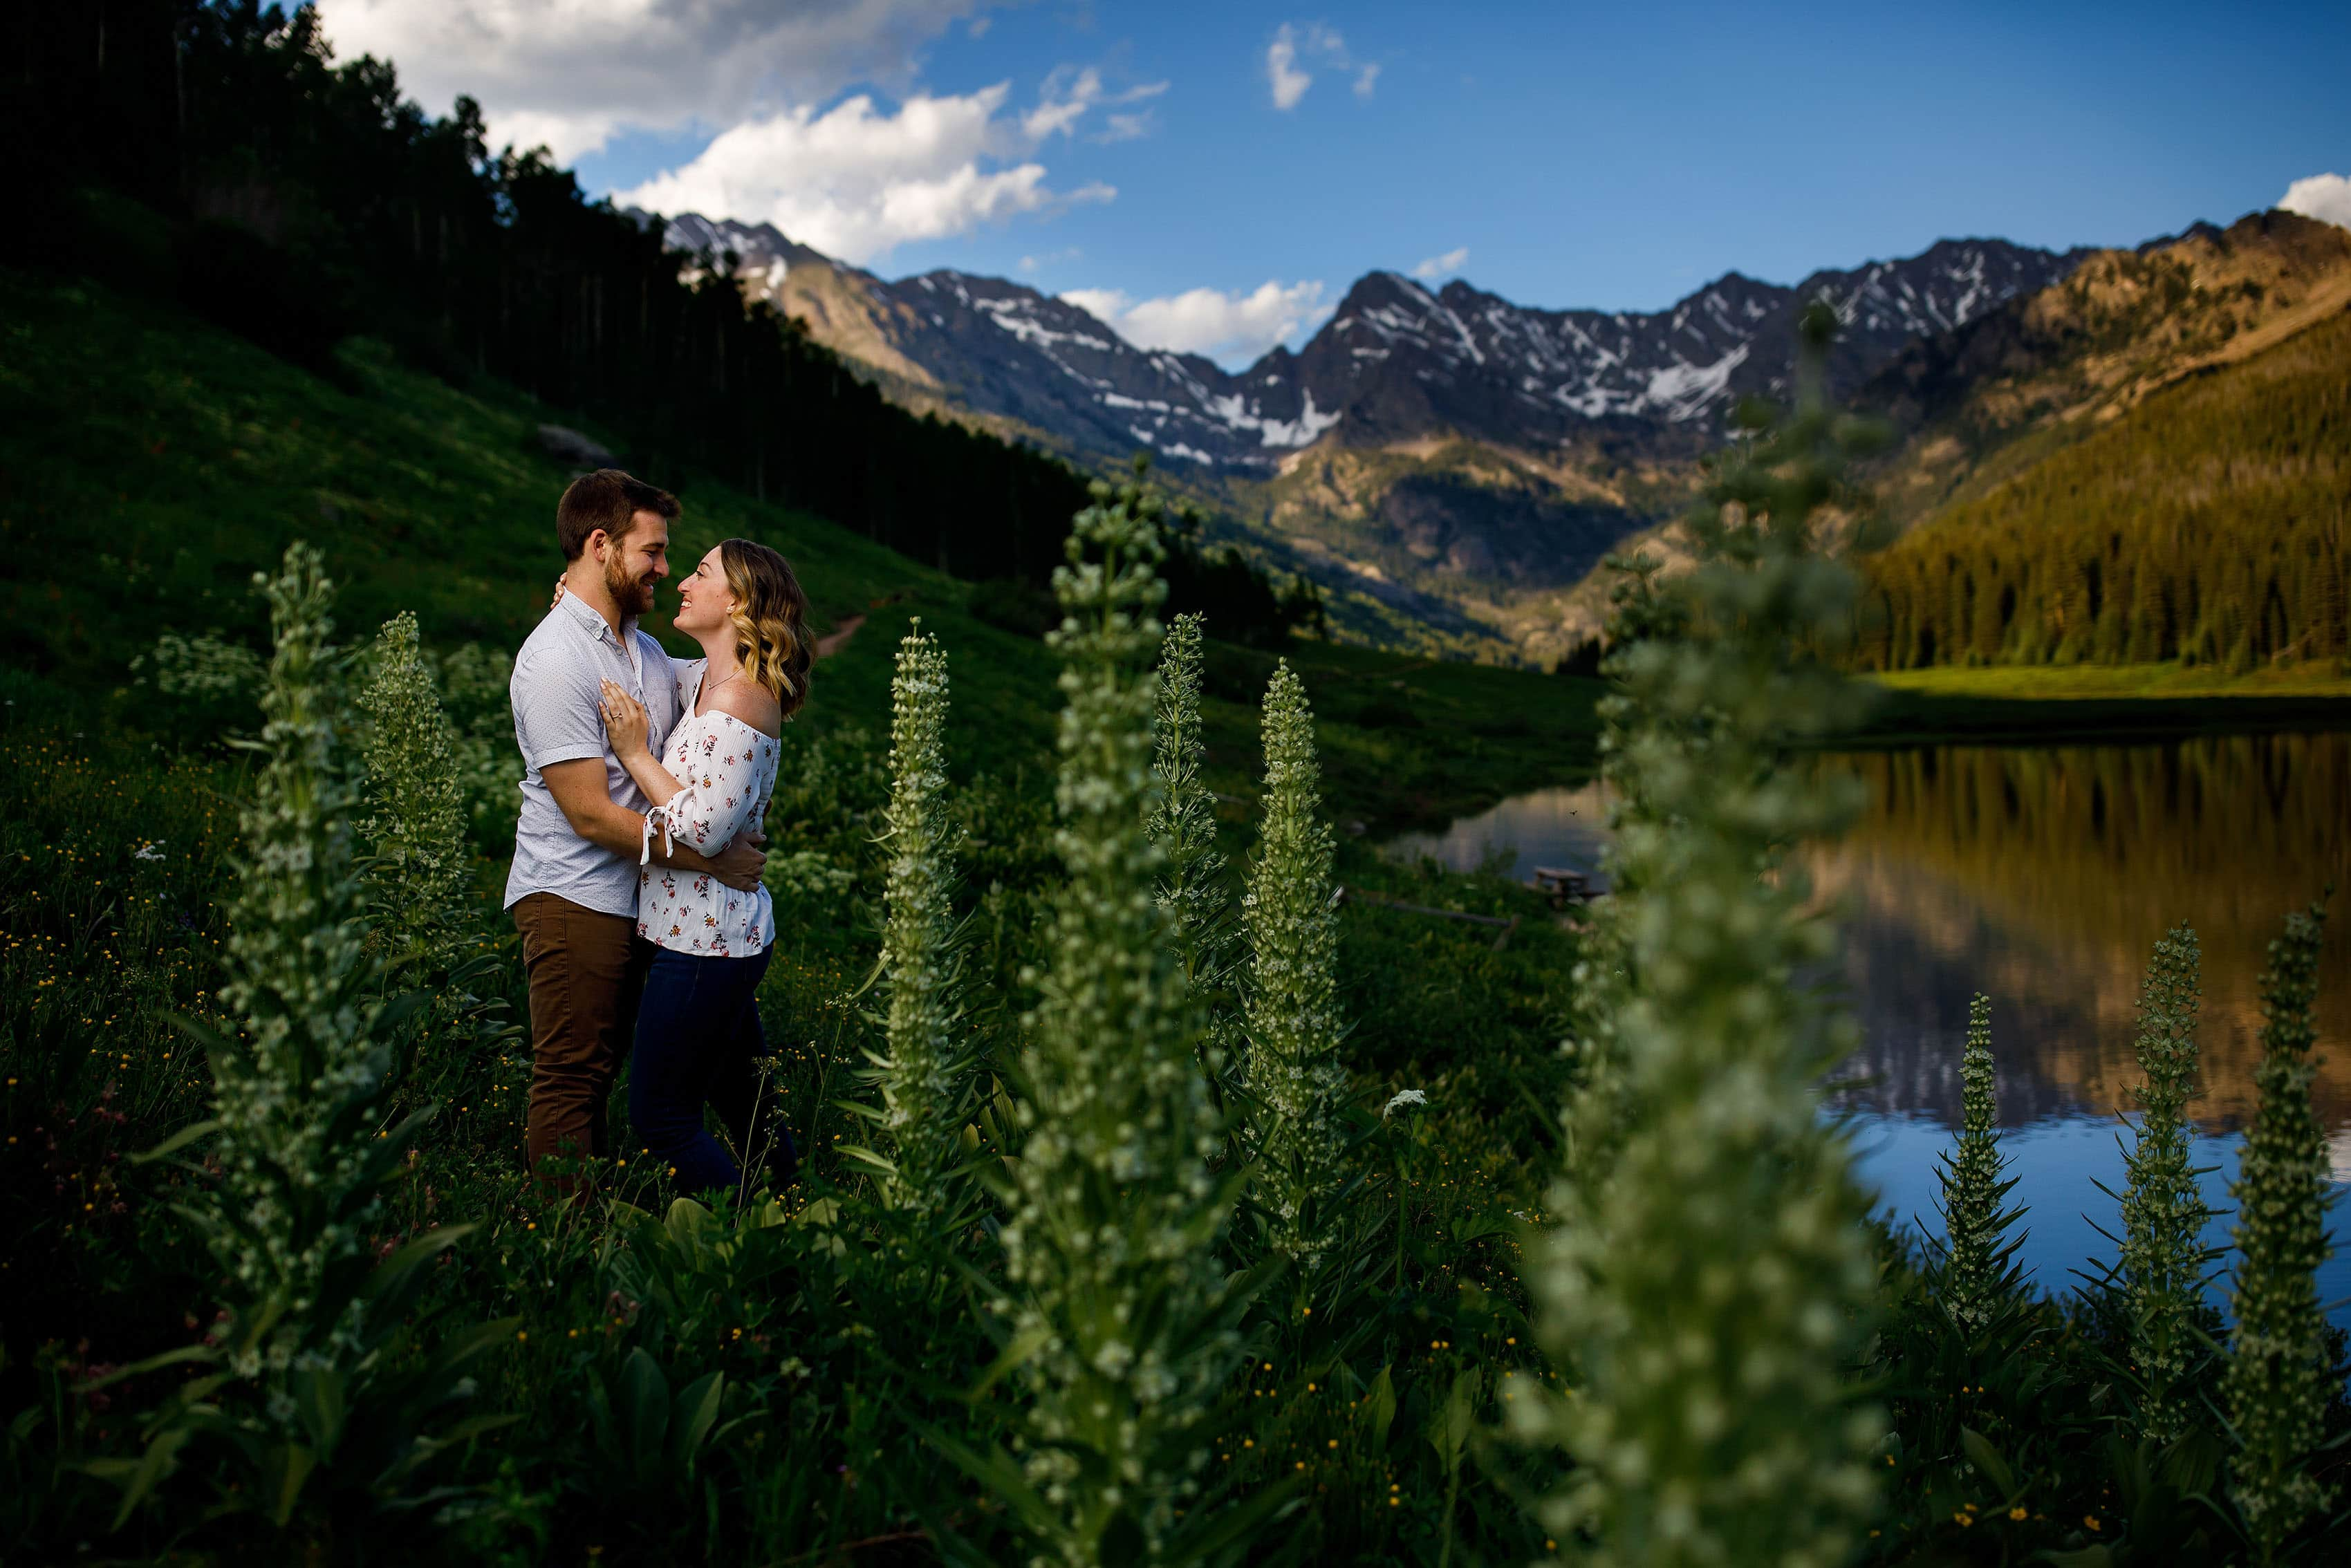 Ryan and Laura embrace during their engagement session at Piney Lake near Vail, Colorado